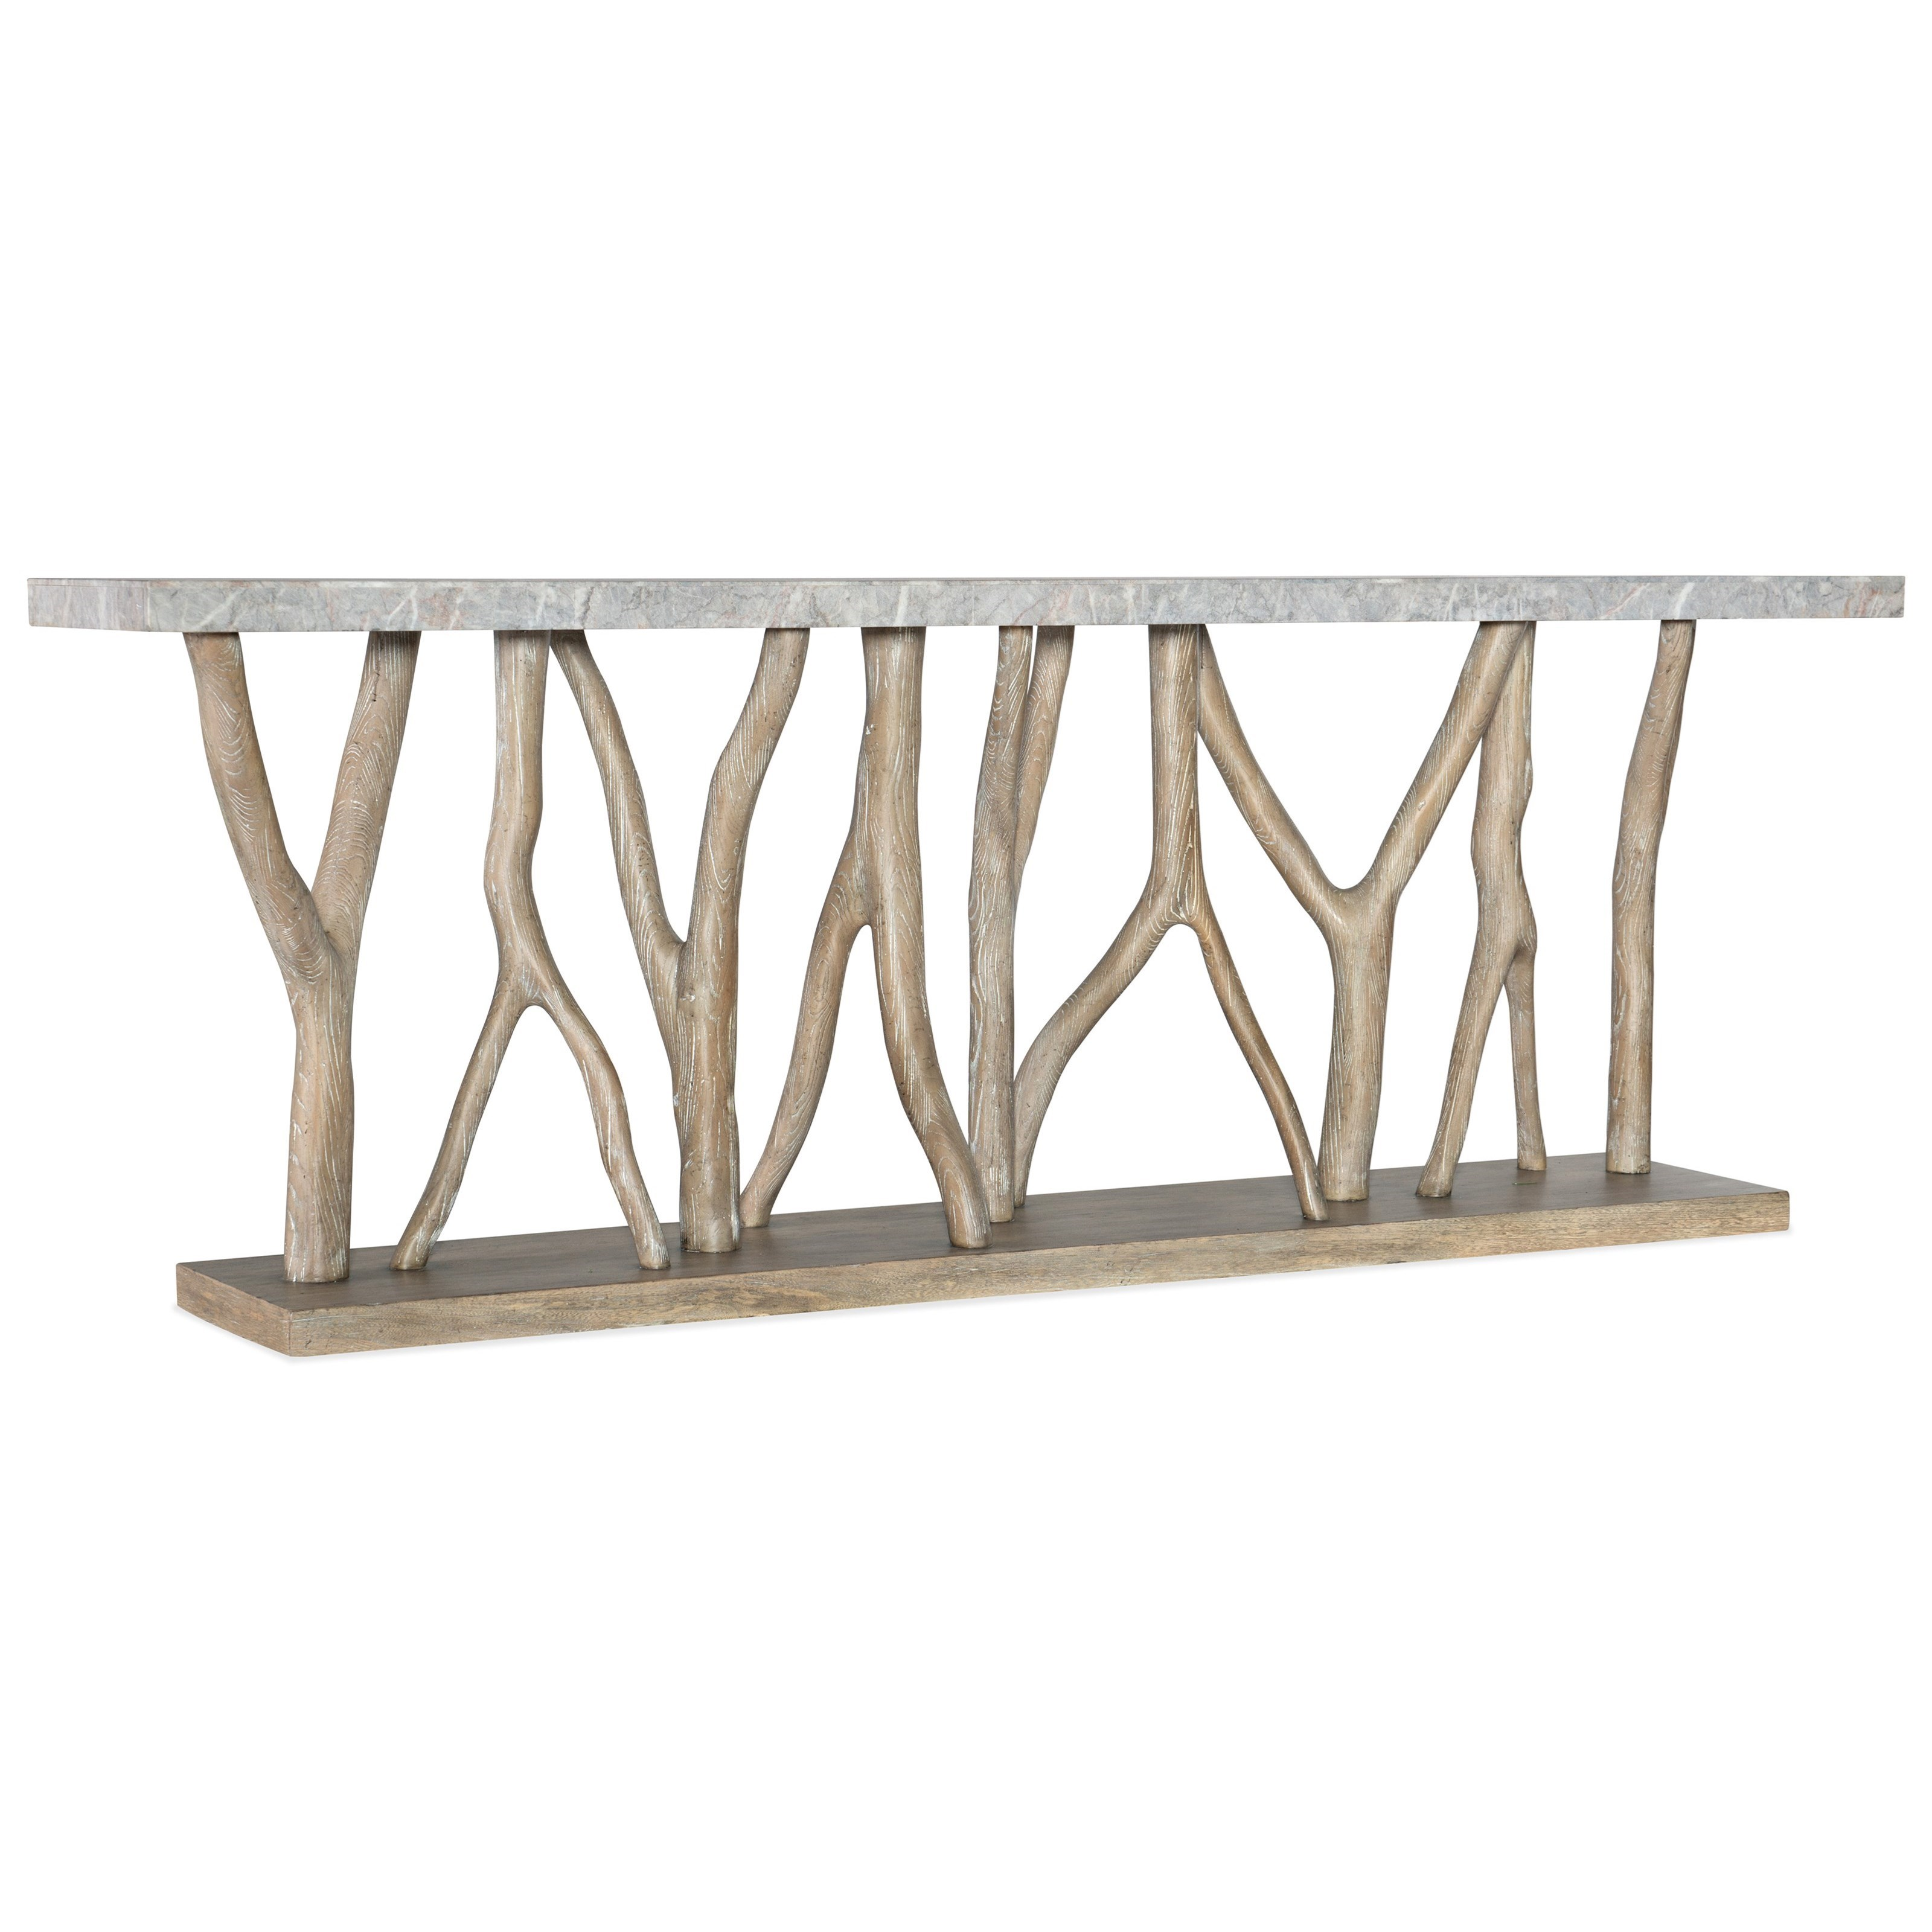 Hooker Furniture Surfrider Coastal Console Table With Stone Veneer Top Belfort Furniture Sofa Tables Consoles